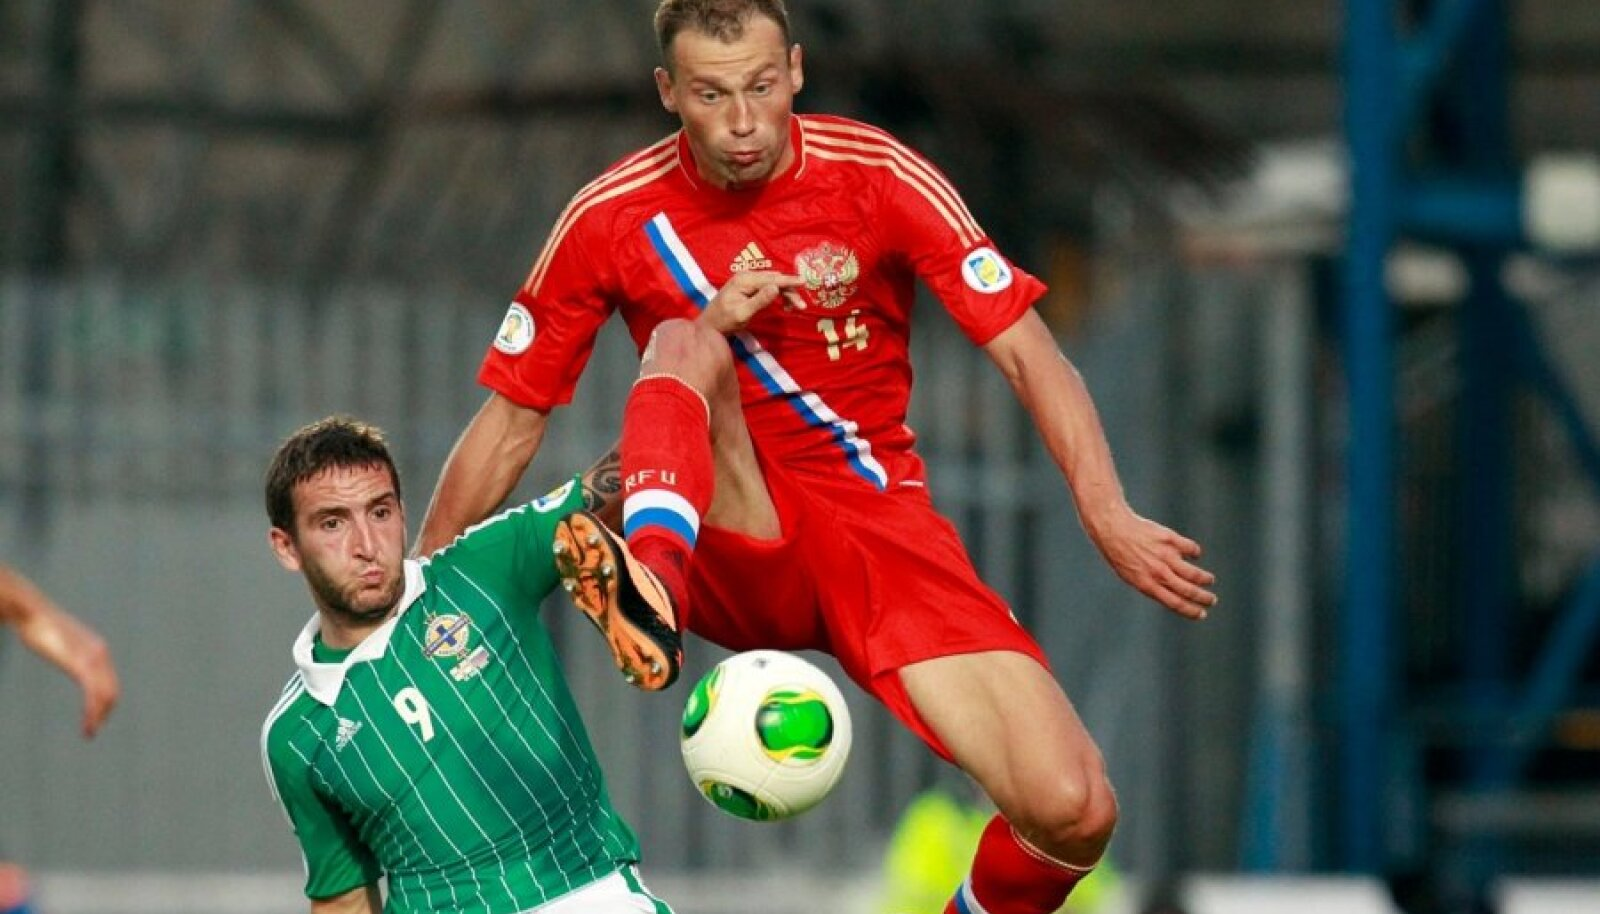 Northern Ireland's Martin Paterson is challenged by Russia's Vasily Berezutskyi during their World Cup qualifying soccer match at Windsor Park Stadium in Belfast